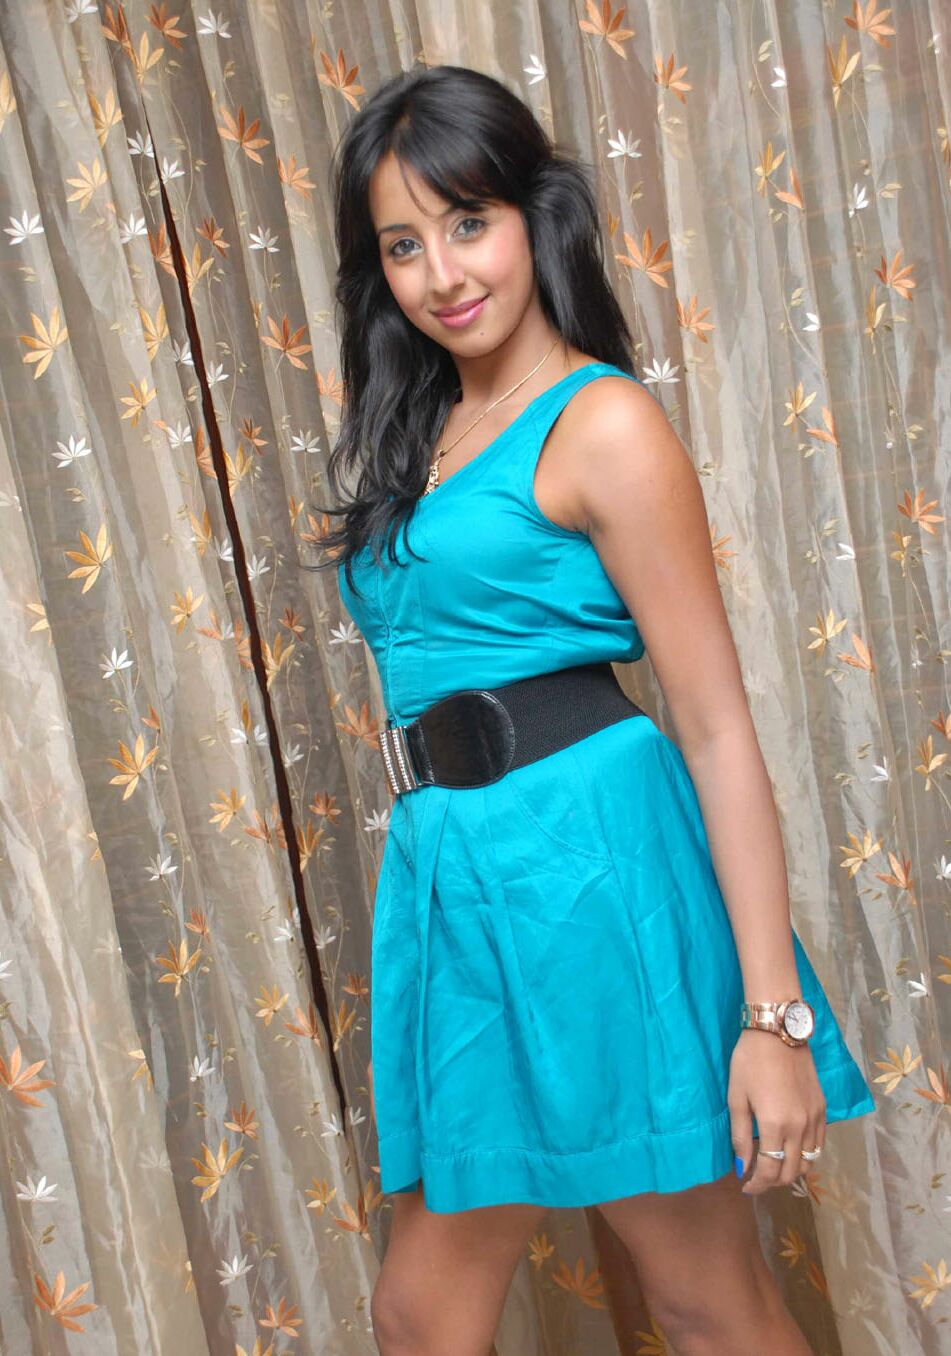 Sanjana Hot Pic - Sanjana Beautiful Photoshoot Pics